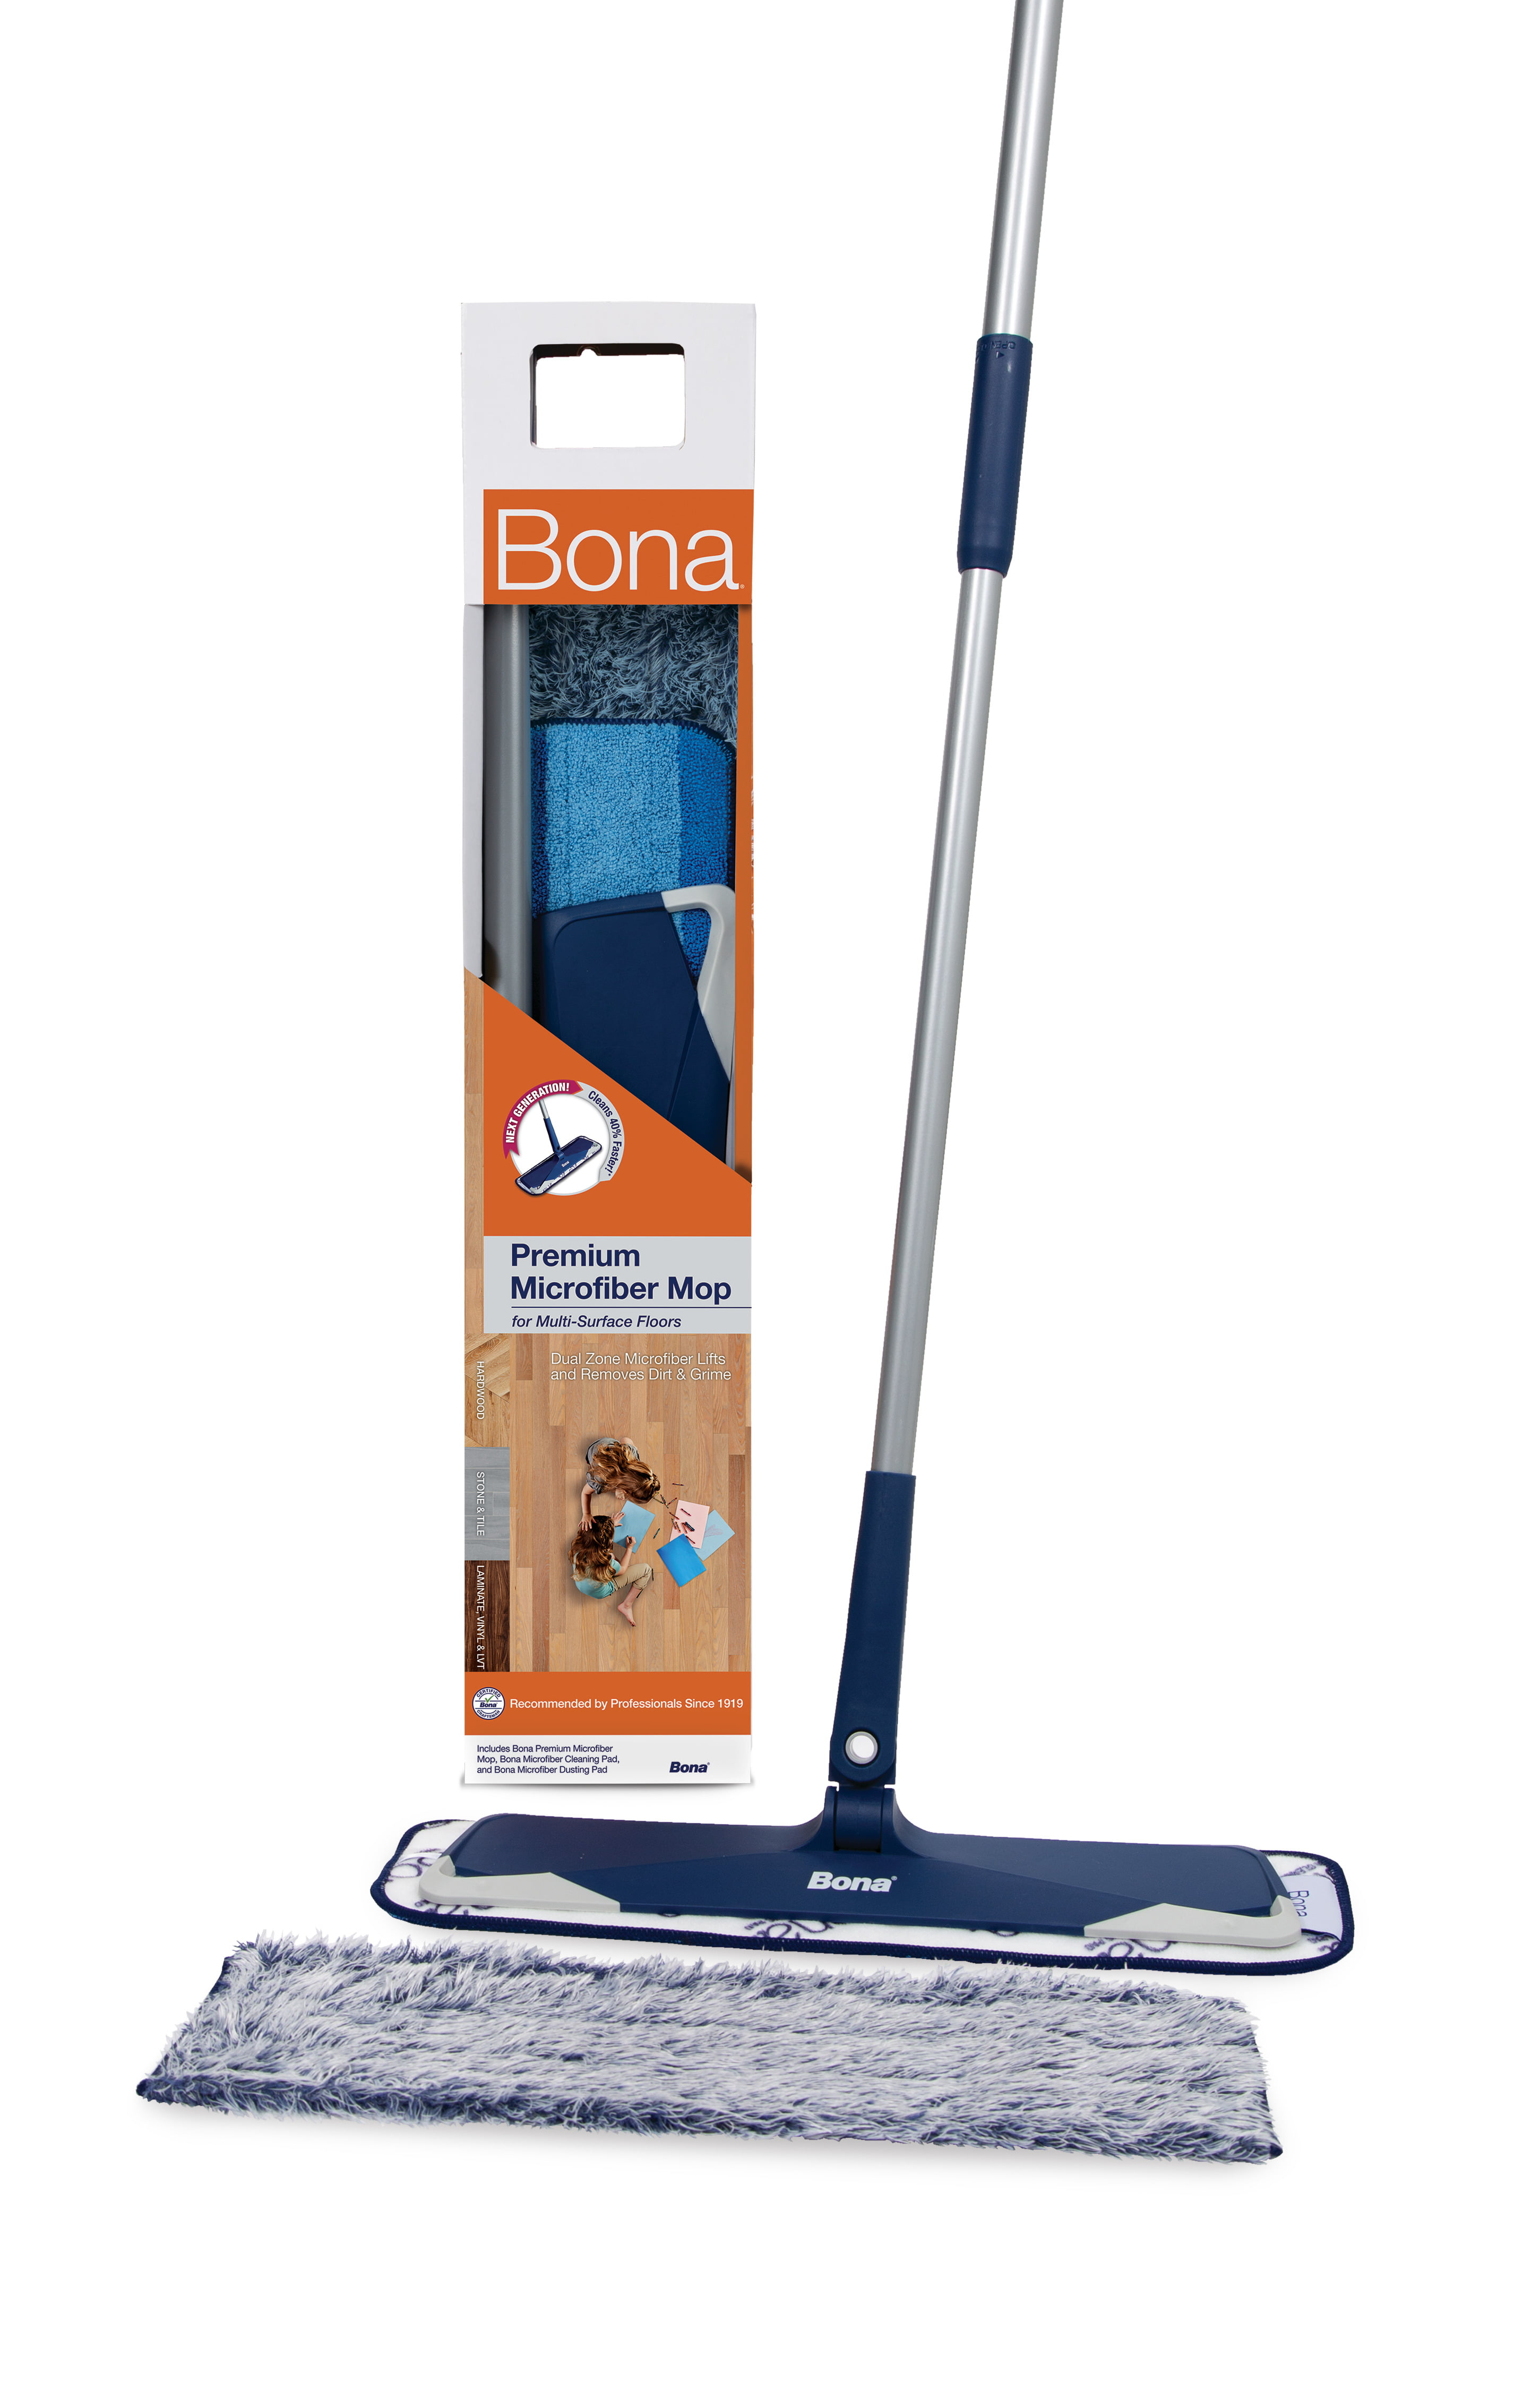 Bona Microfibre Cleaning Pad for Mop Floor Cleaning Washable//Reusable Wood//Tile